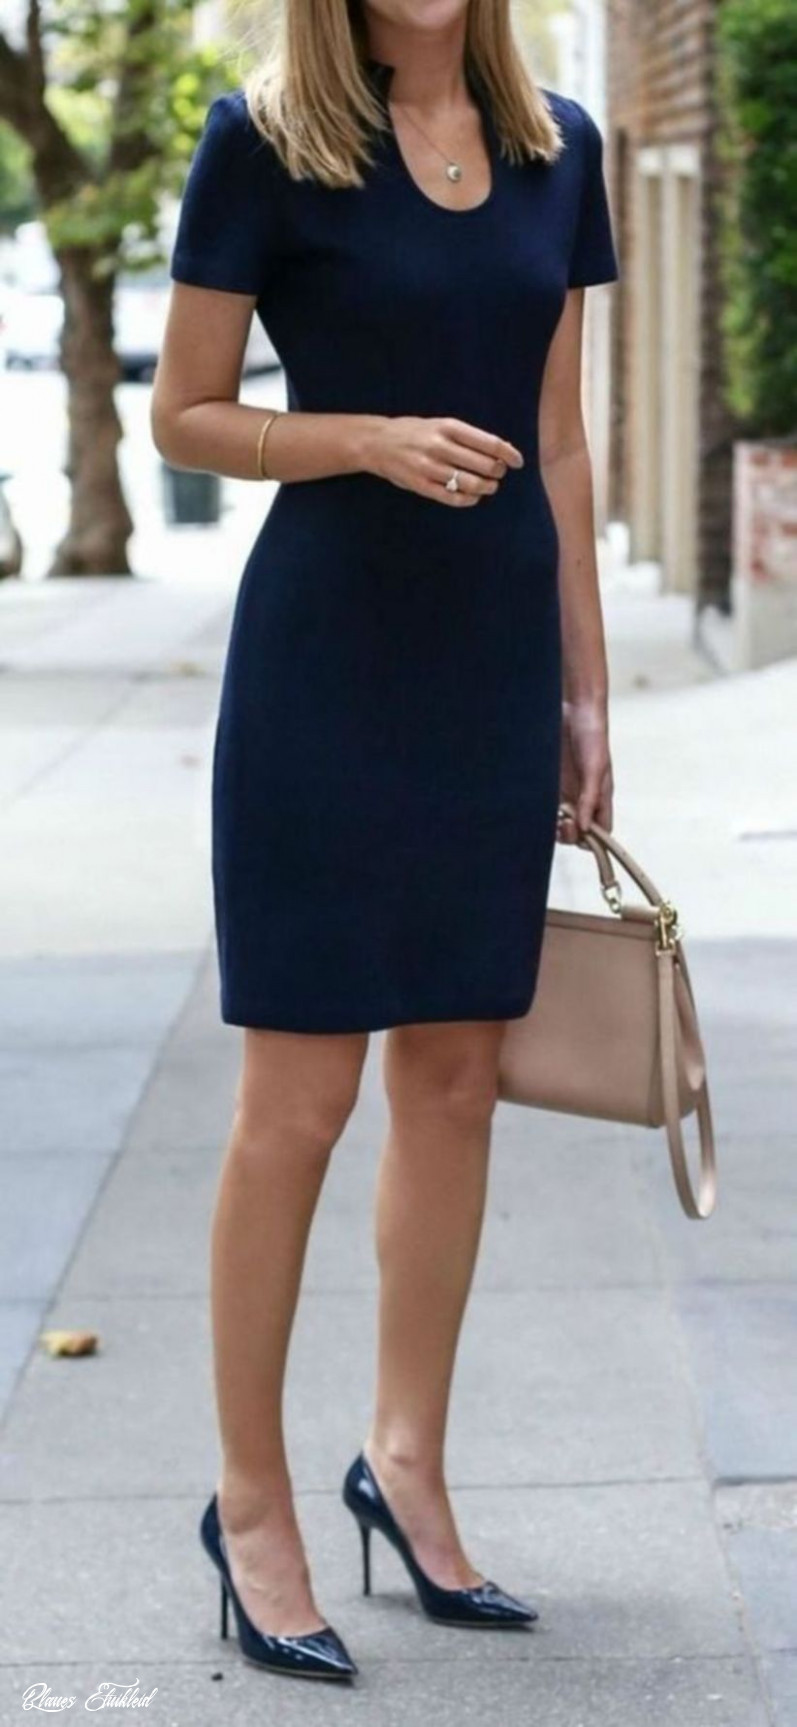 work outfits for stitch fix outfits business 10 professional